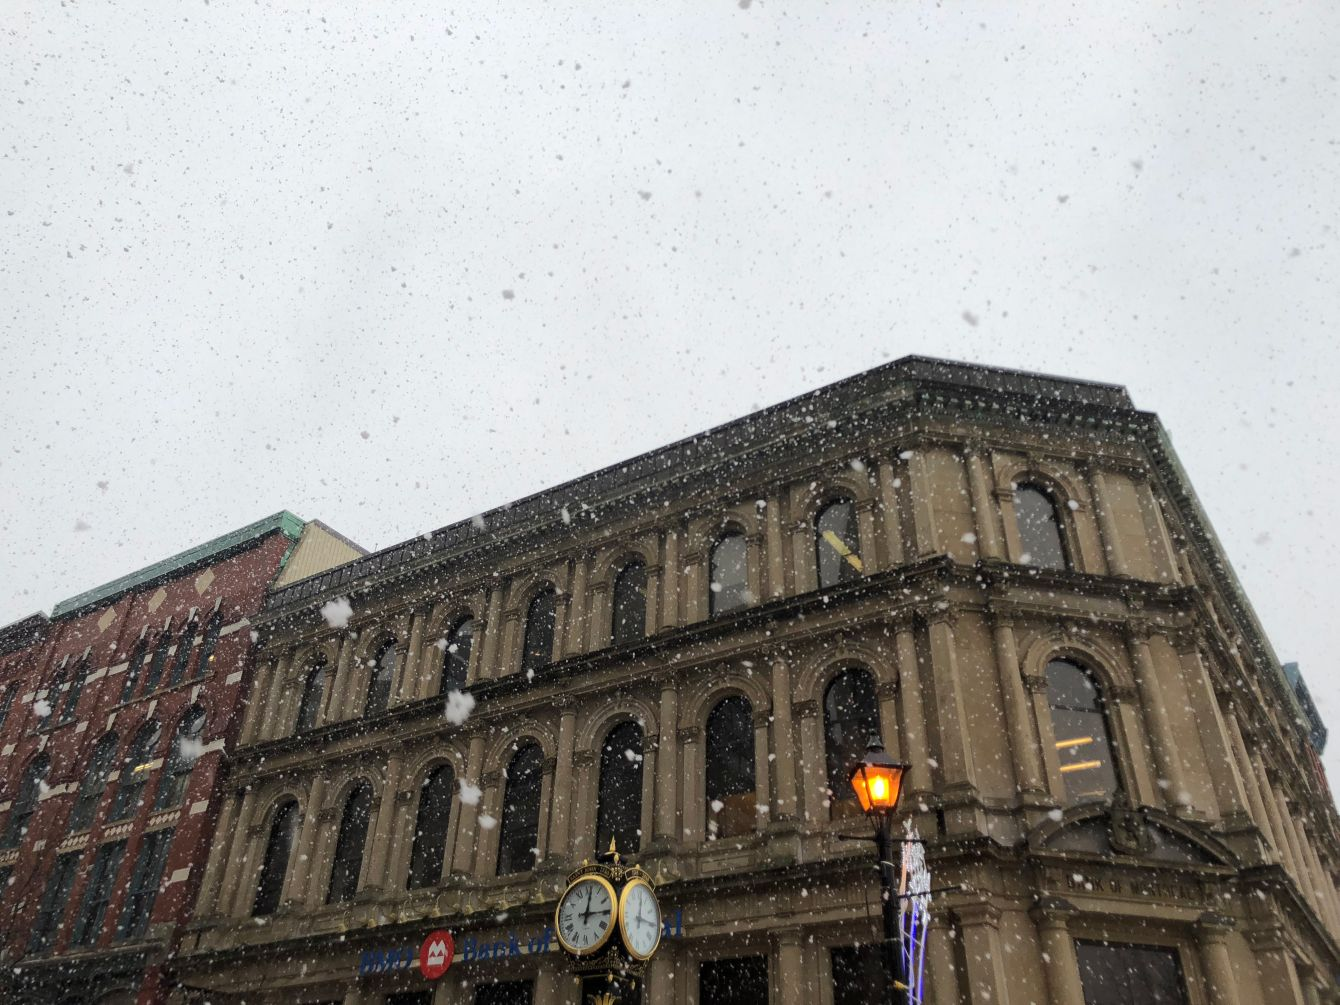 Click thumbnail to see details about photo - Snow Falling Down on King Street Saint John Photograph